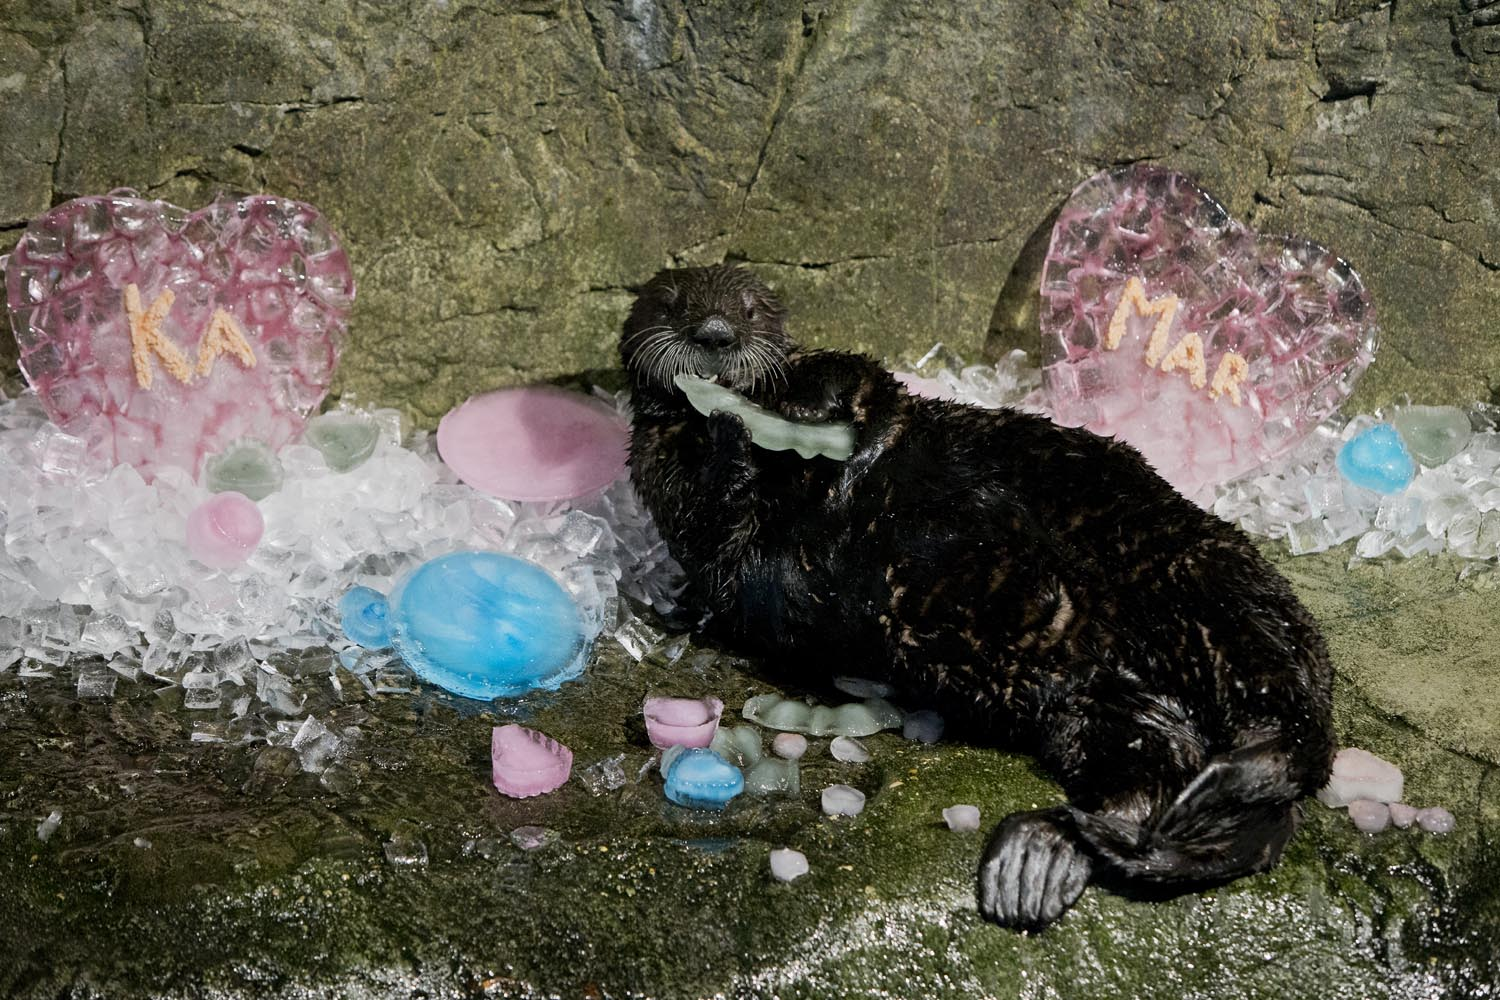 Shedd Aquarium's Otters Celebrate Valentine's Day with Icy Treats and More 4